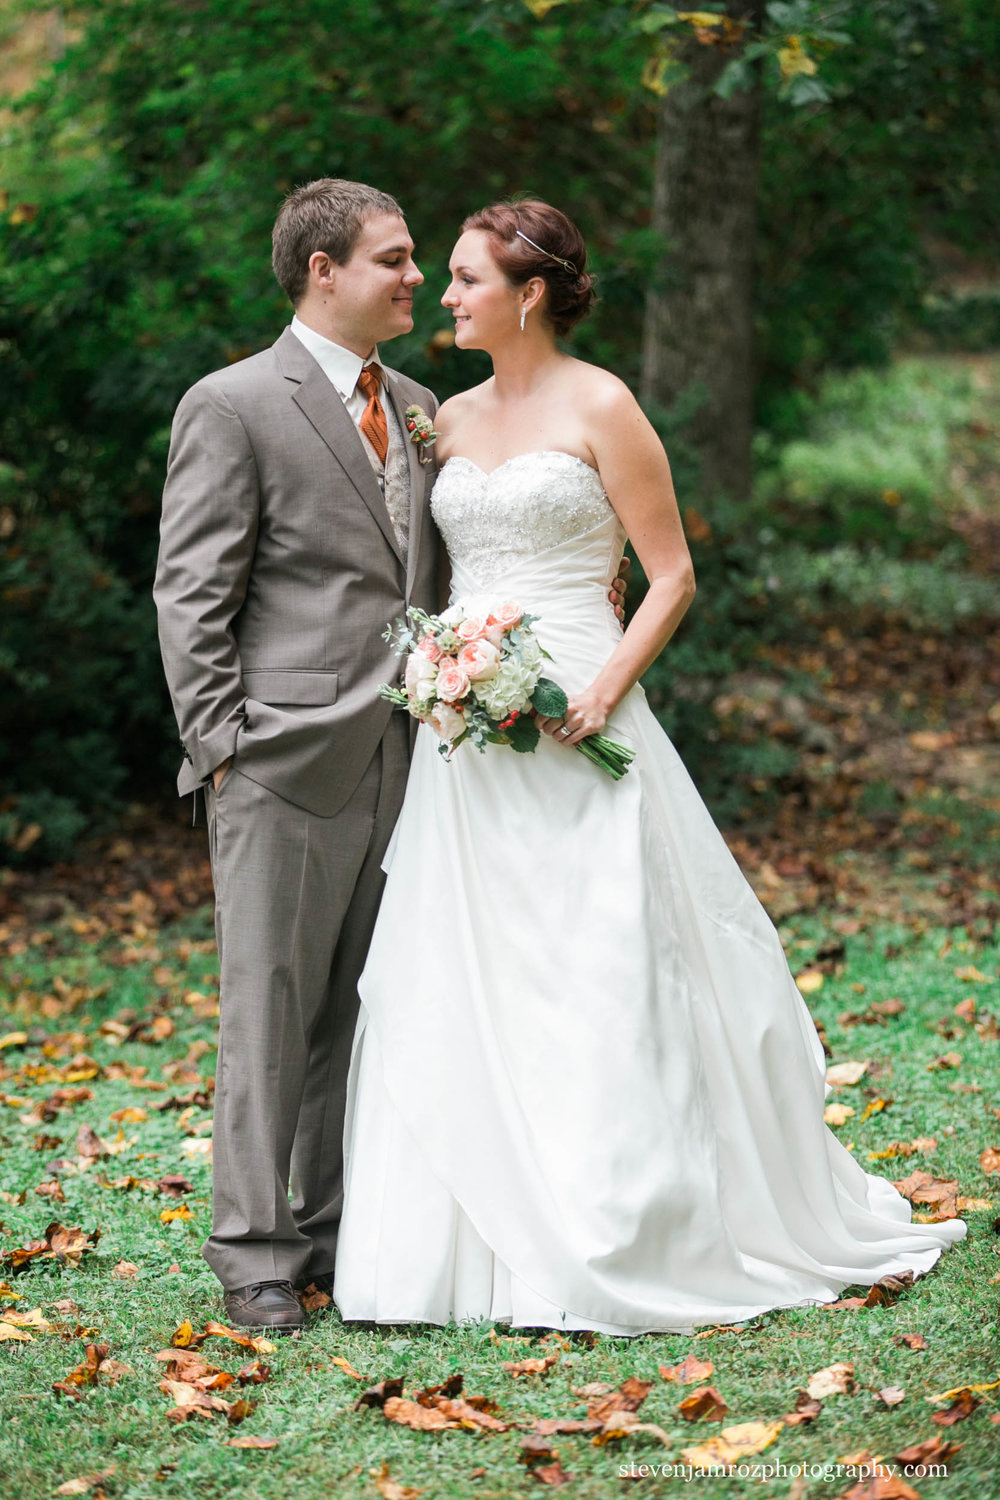 fall-colors-wedding-raleigh-nc-steven-jamroz-photography-0213.jpg